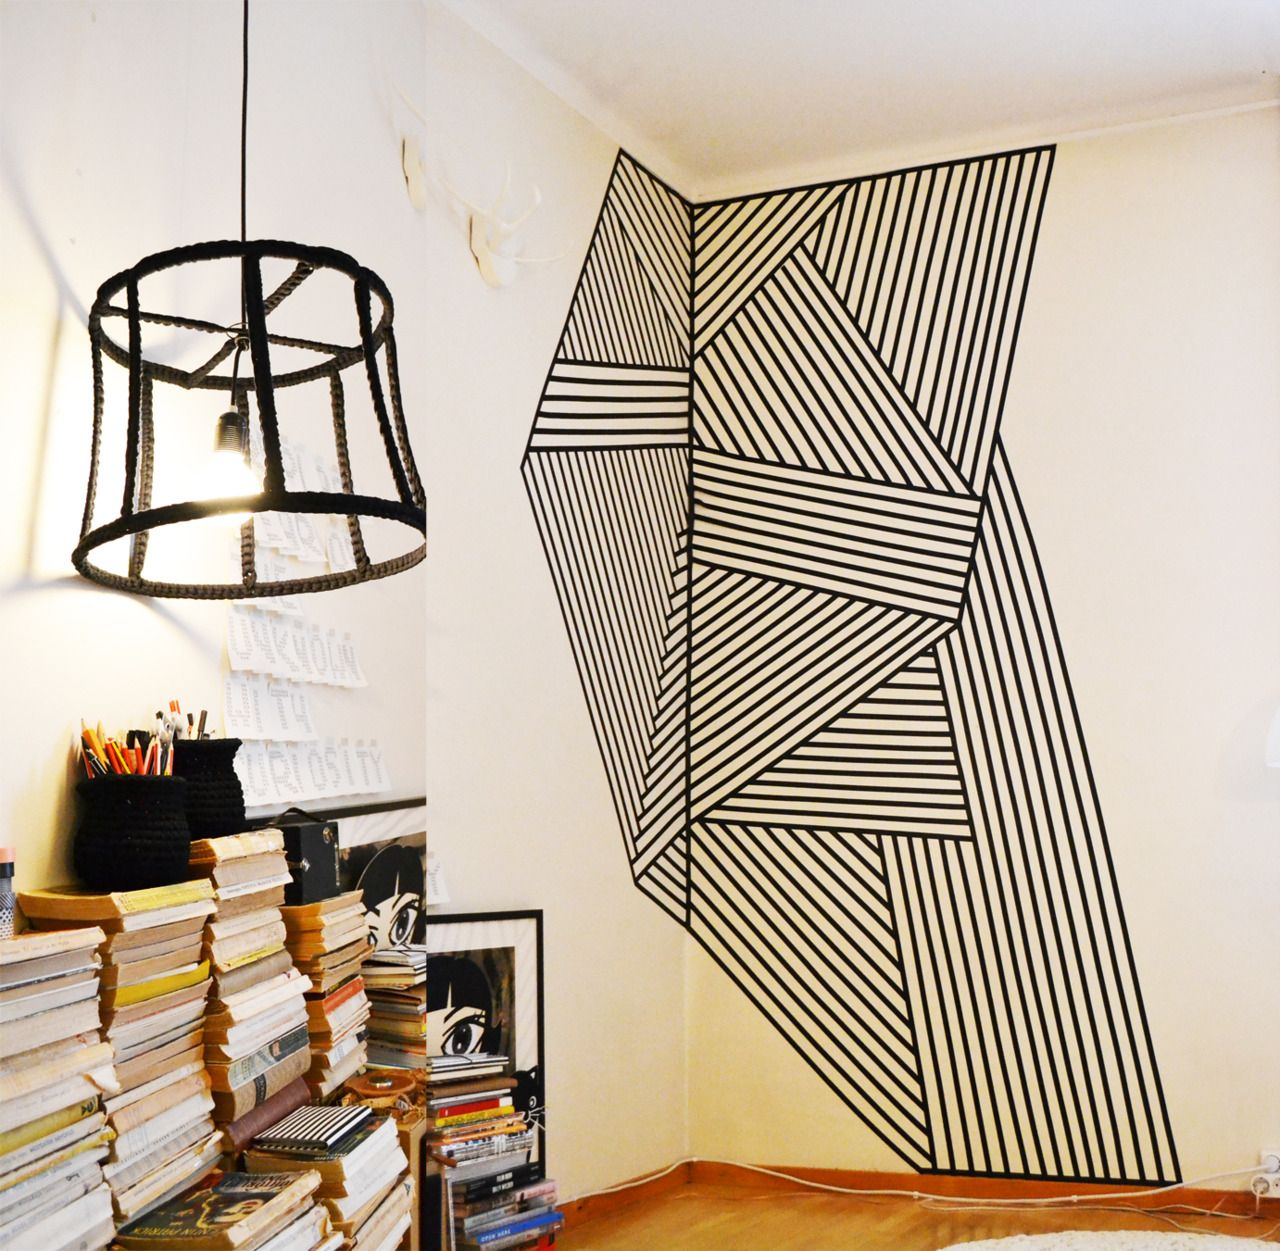 Wall Decoration Made With Black Plastic Tape, Size 200x260cm. Wire Lamp  Made From Recycled